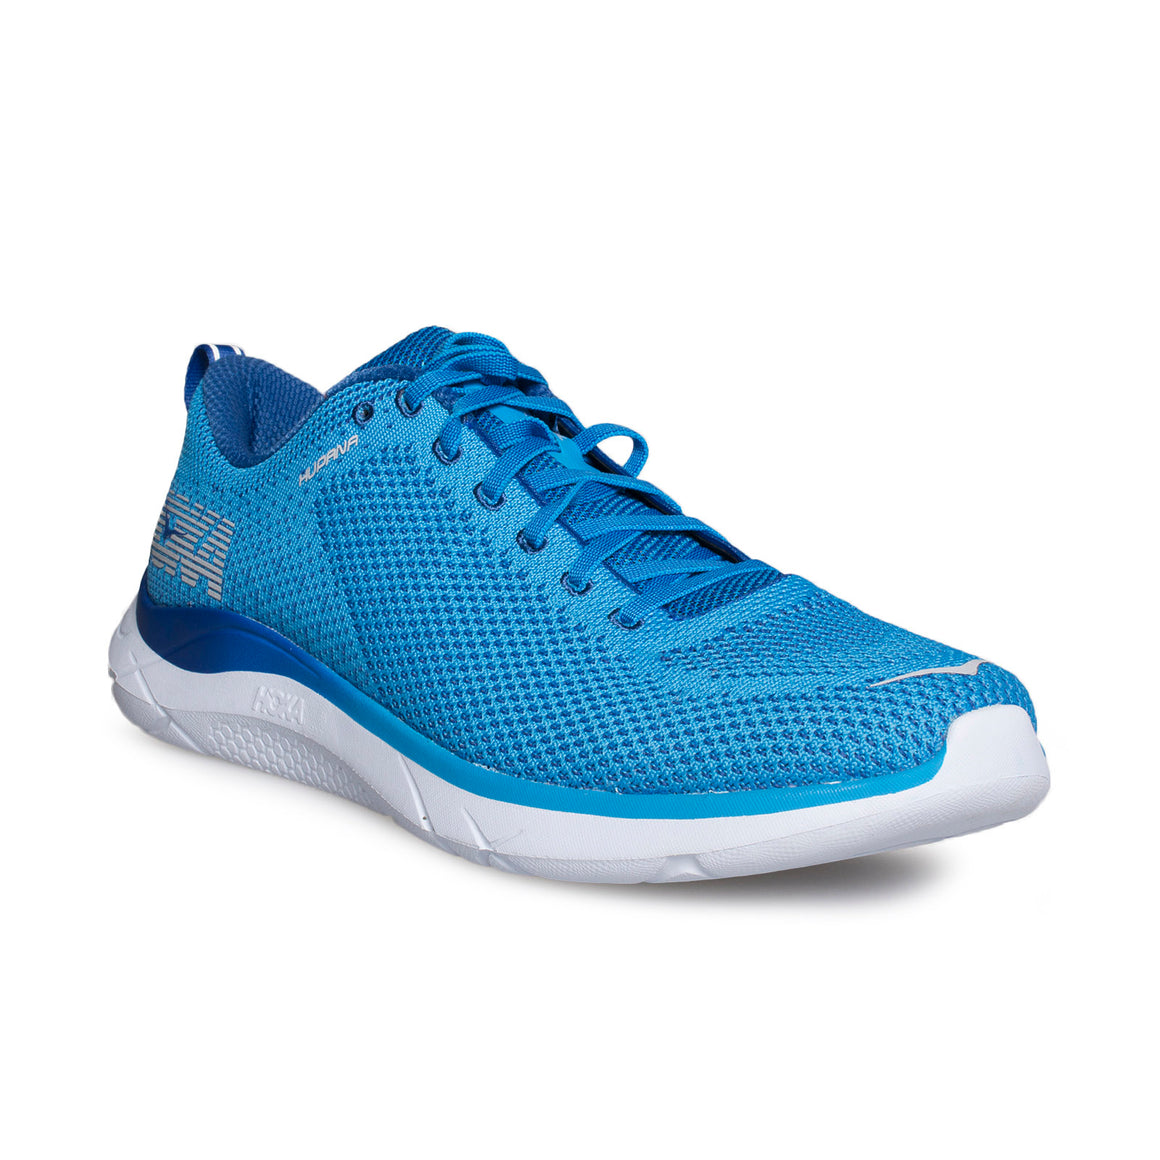 HOKA Hupana 2 Diva Blue / True Blue Shoes - Men's